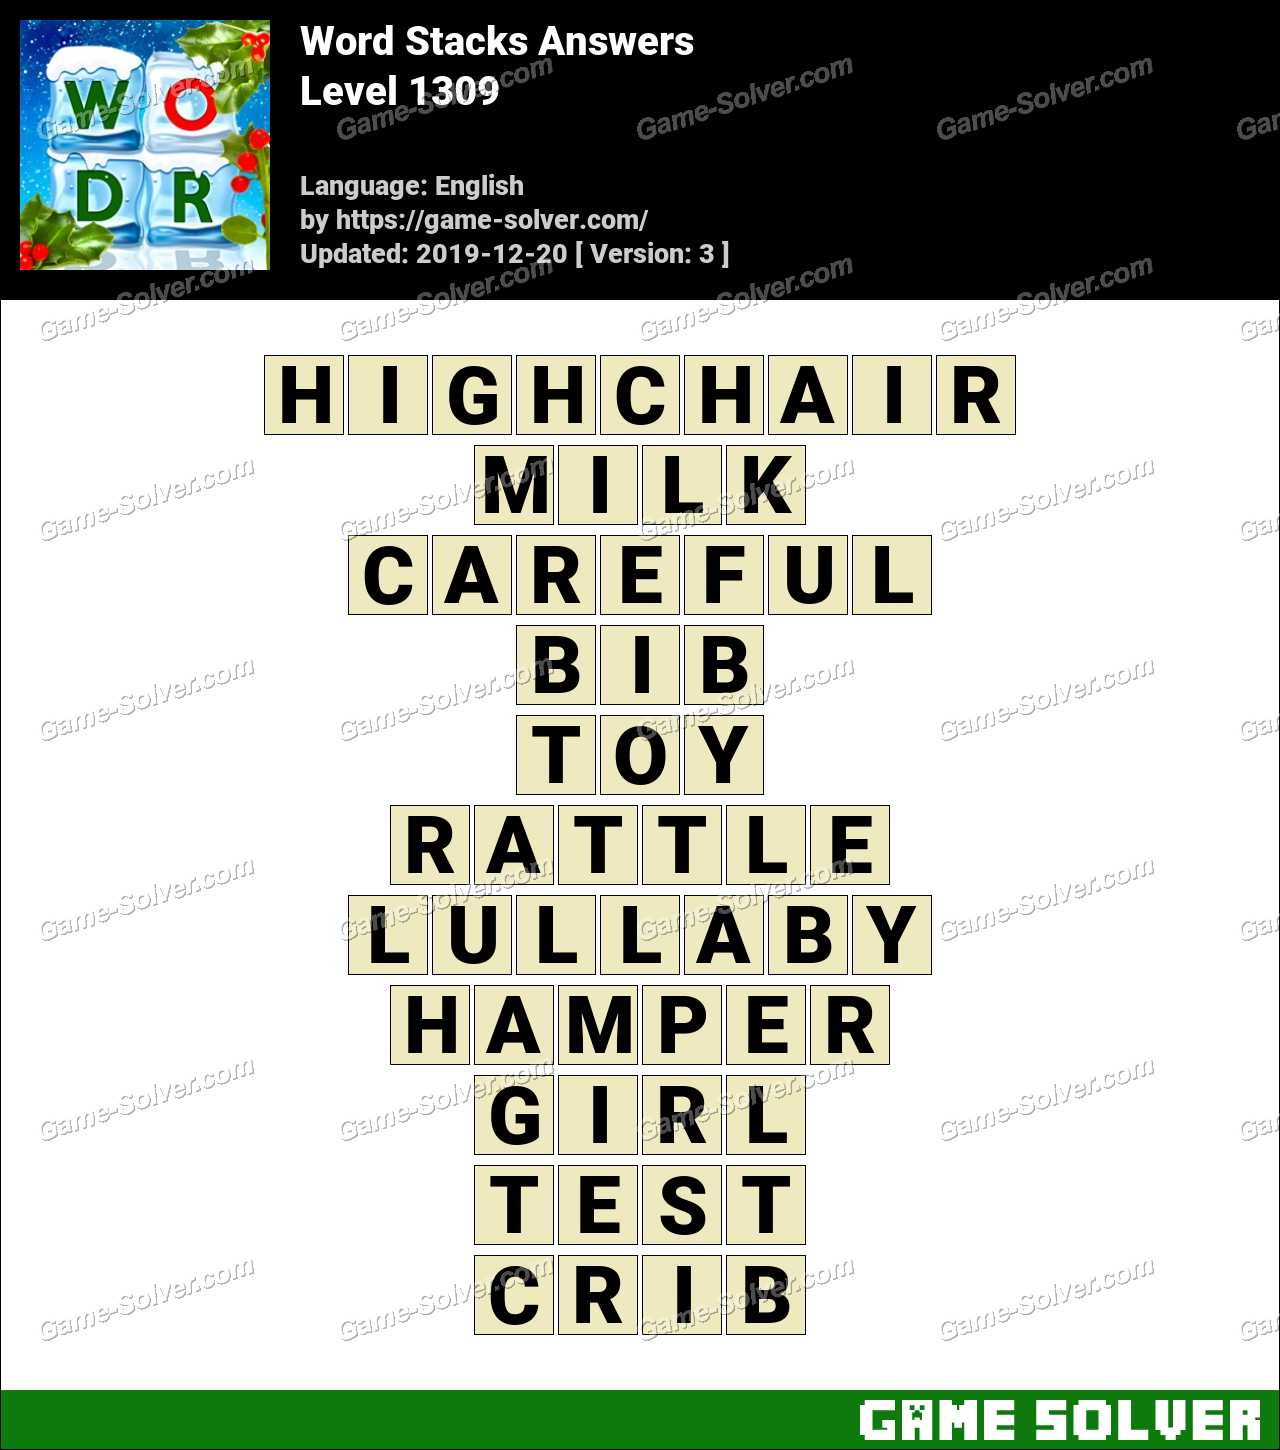 Word Stacks Level 1309 Answers